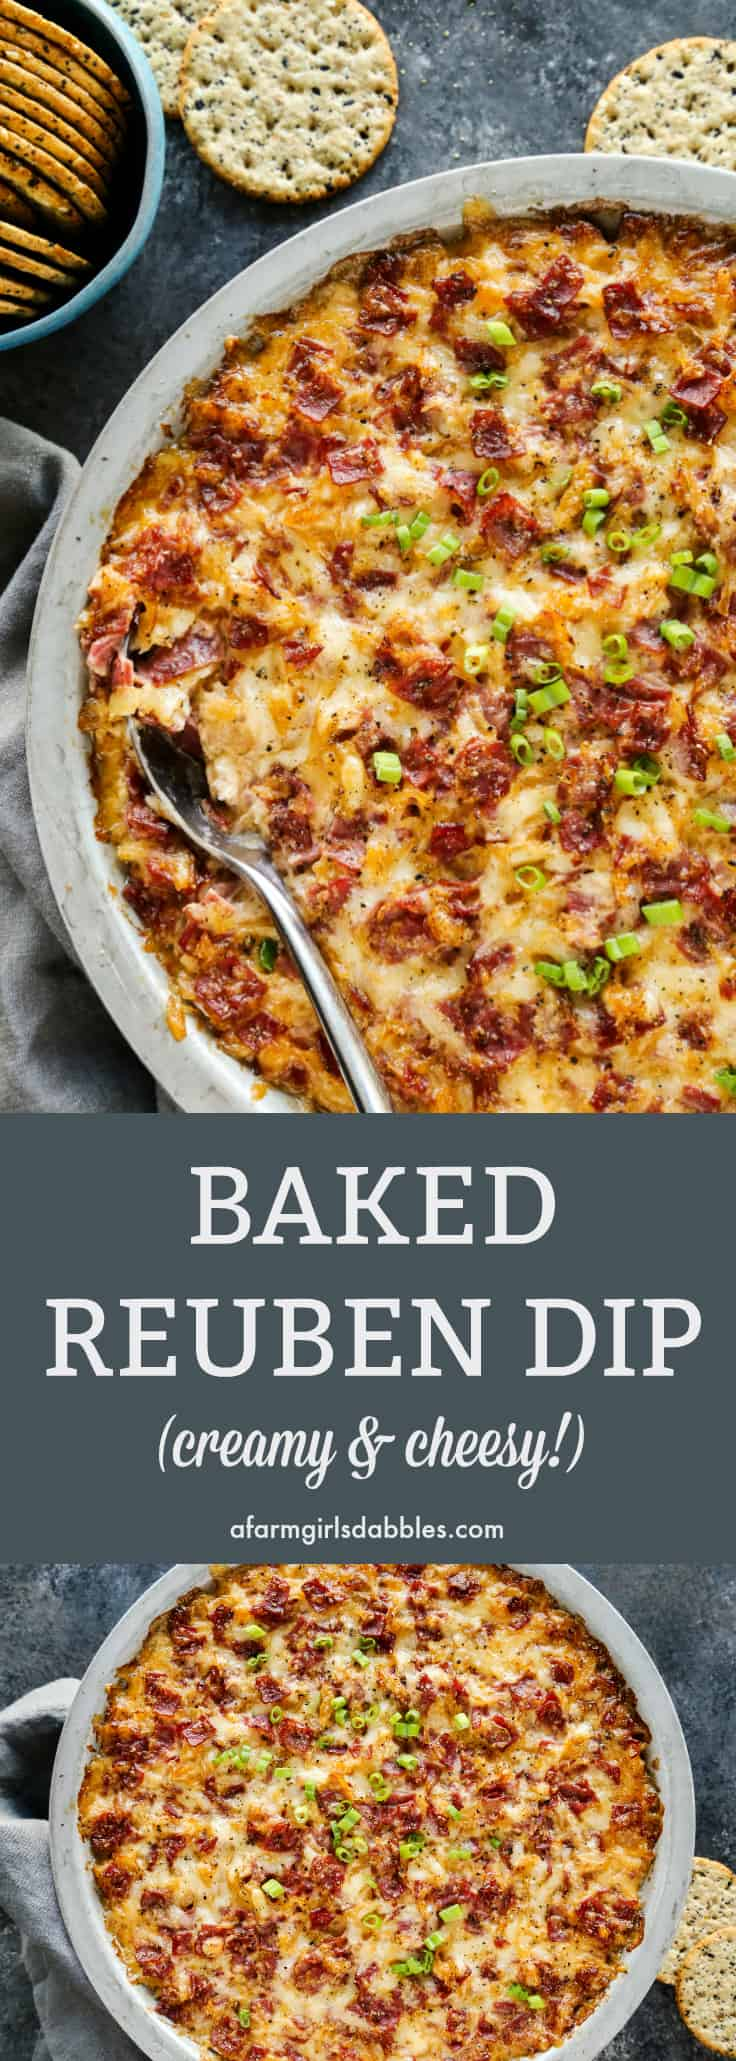 Baked Reuben Dip from afarmgirlsdabbles.com - This appetizer is like a deconstructed Reuben sandwich, all magnificently reborn into a baked ooey gooey, cheesy dip! #appetizer #reuben #reubendip #sauerkraut #gameday #cheese #cornedbeef